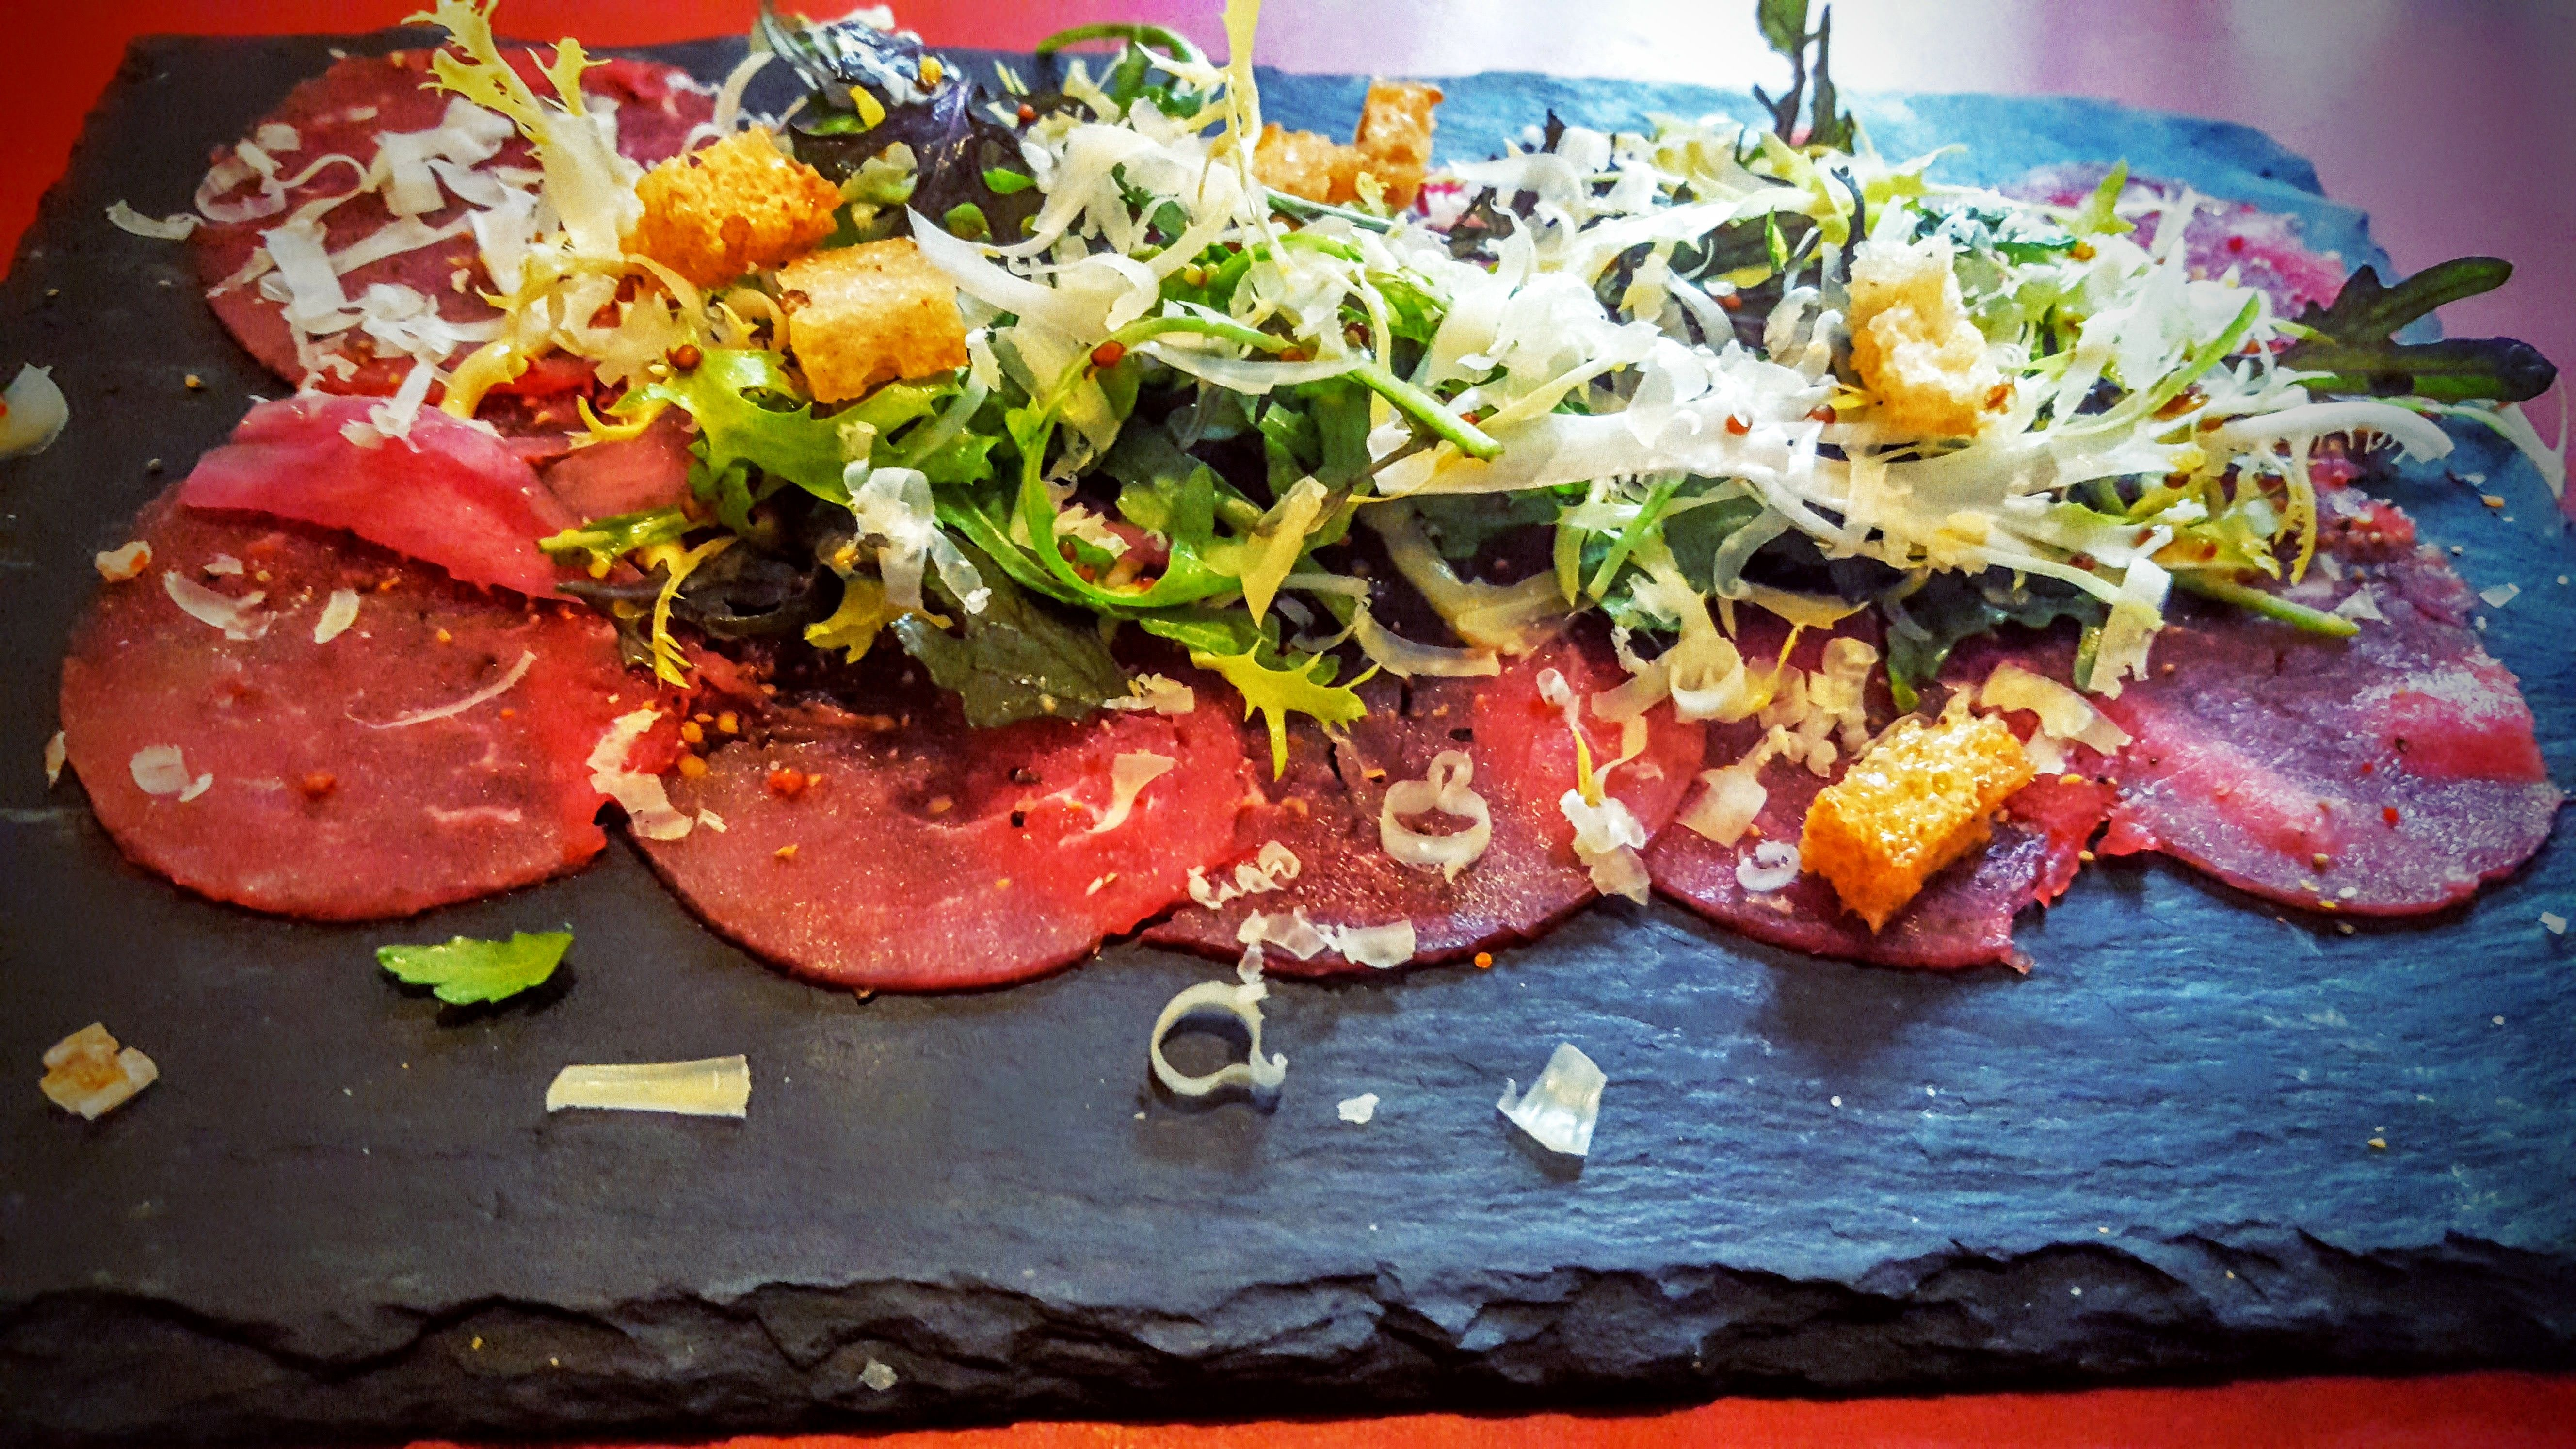 Köd Aarhus carpaccio of danish tenderloin with Vesterhavs cheese, rucola, pickled onions and cracked black pepper & crunchy croutons